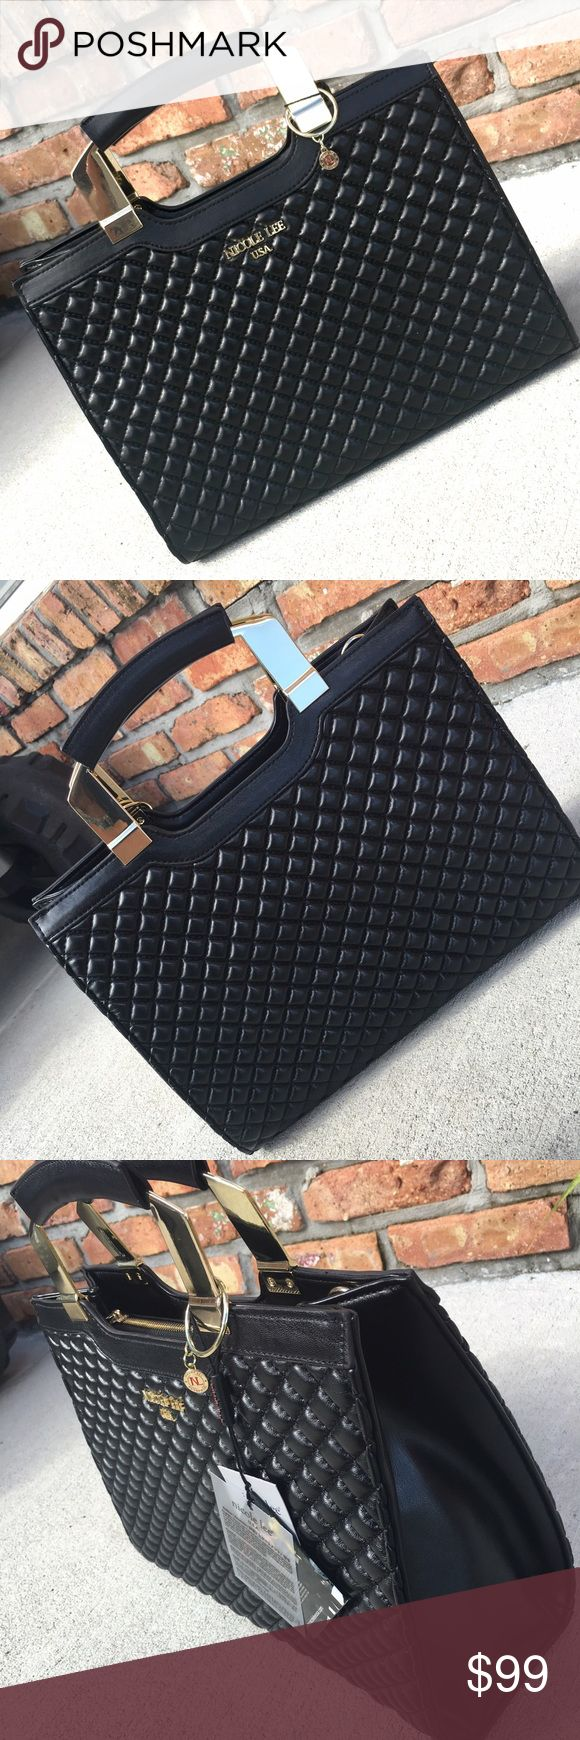 Black Nicole Lee briefcase bag Black quilted leather purse with gold details... Comes with attachable& adjustable shoulder strap... New with tags ..no trades/ holds ⚠️firm on price unless bundling..also available in white & tan Nicole Lee Bags Totes